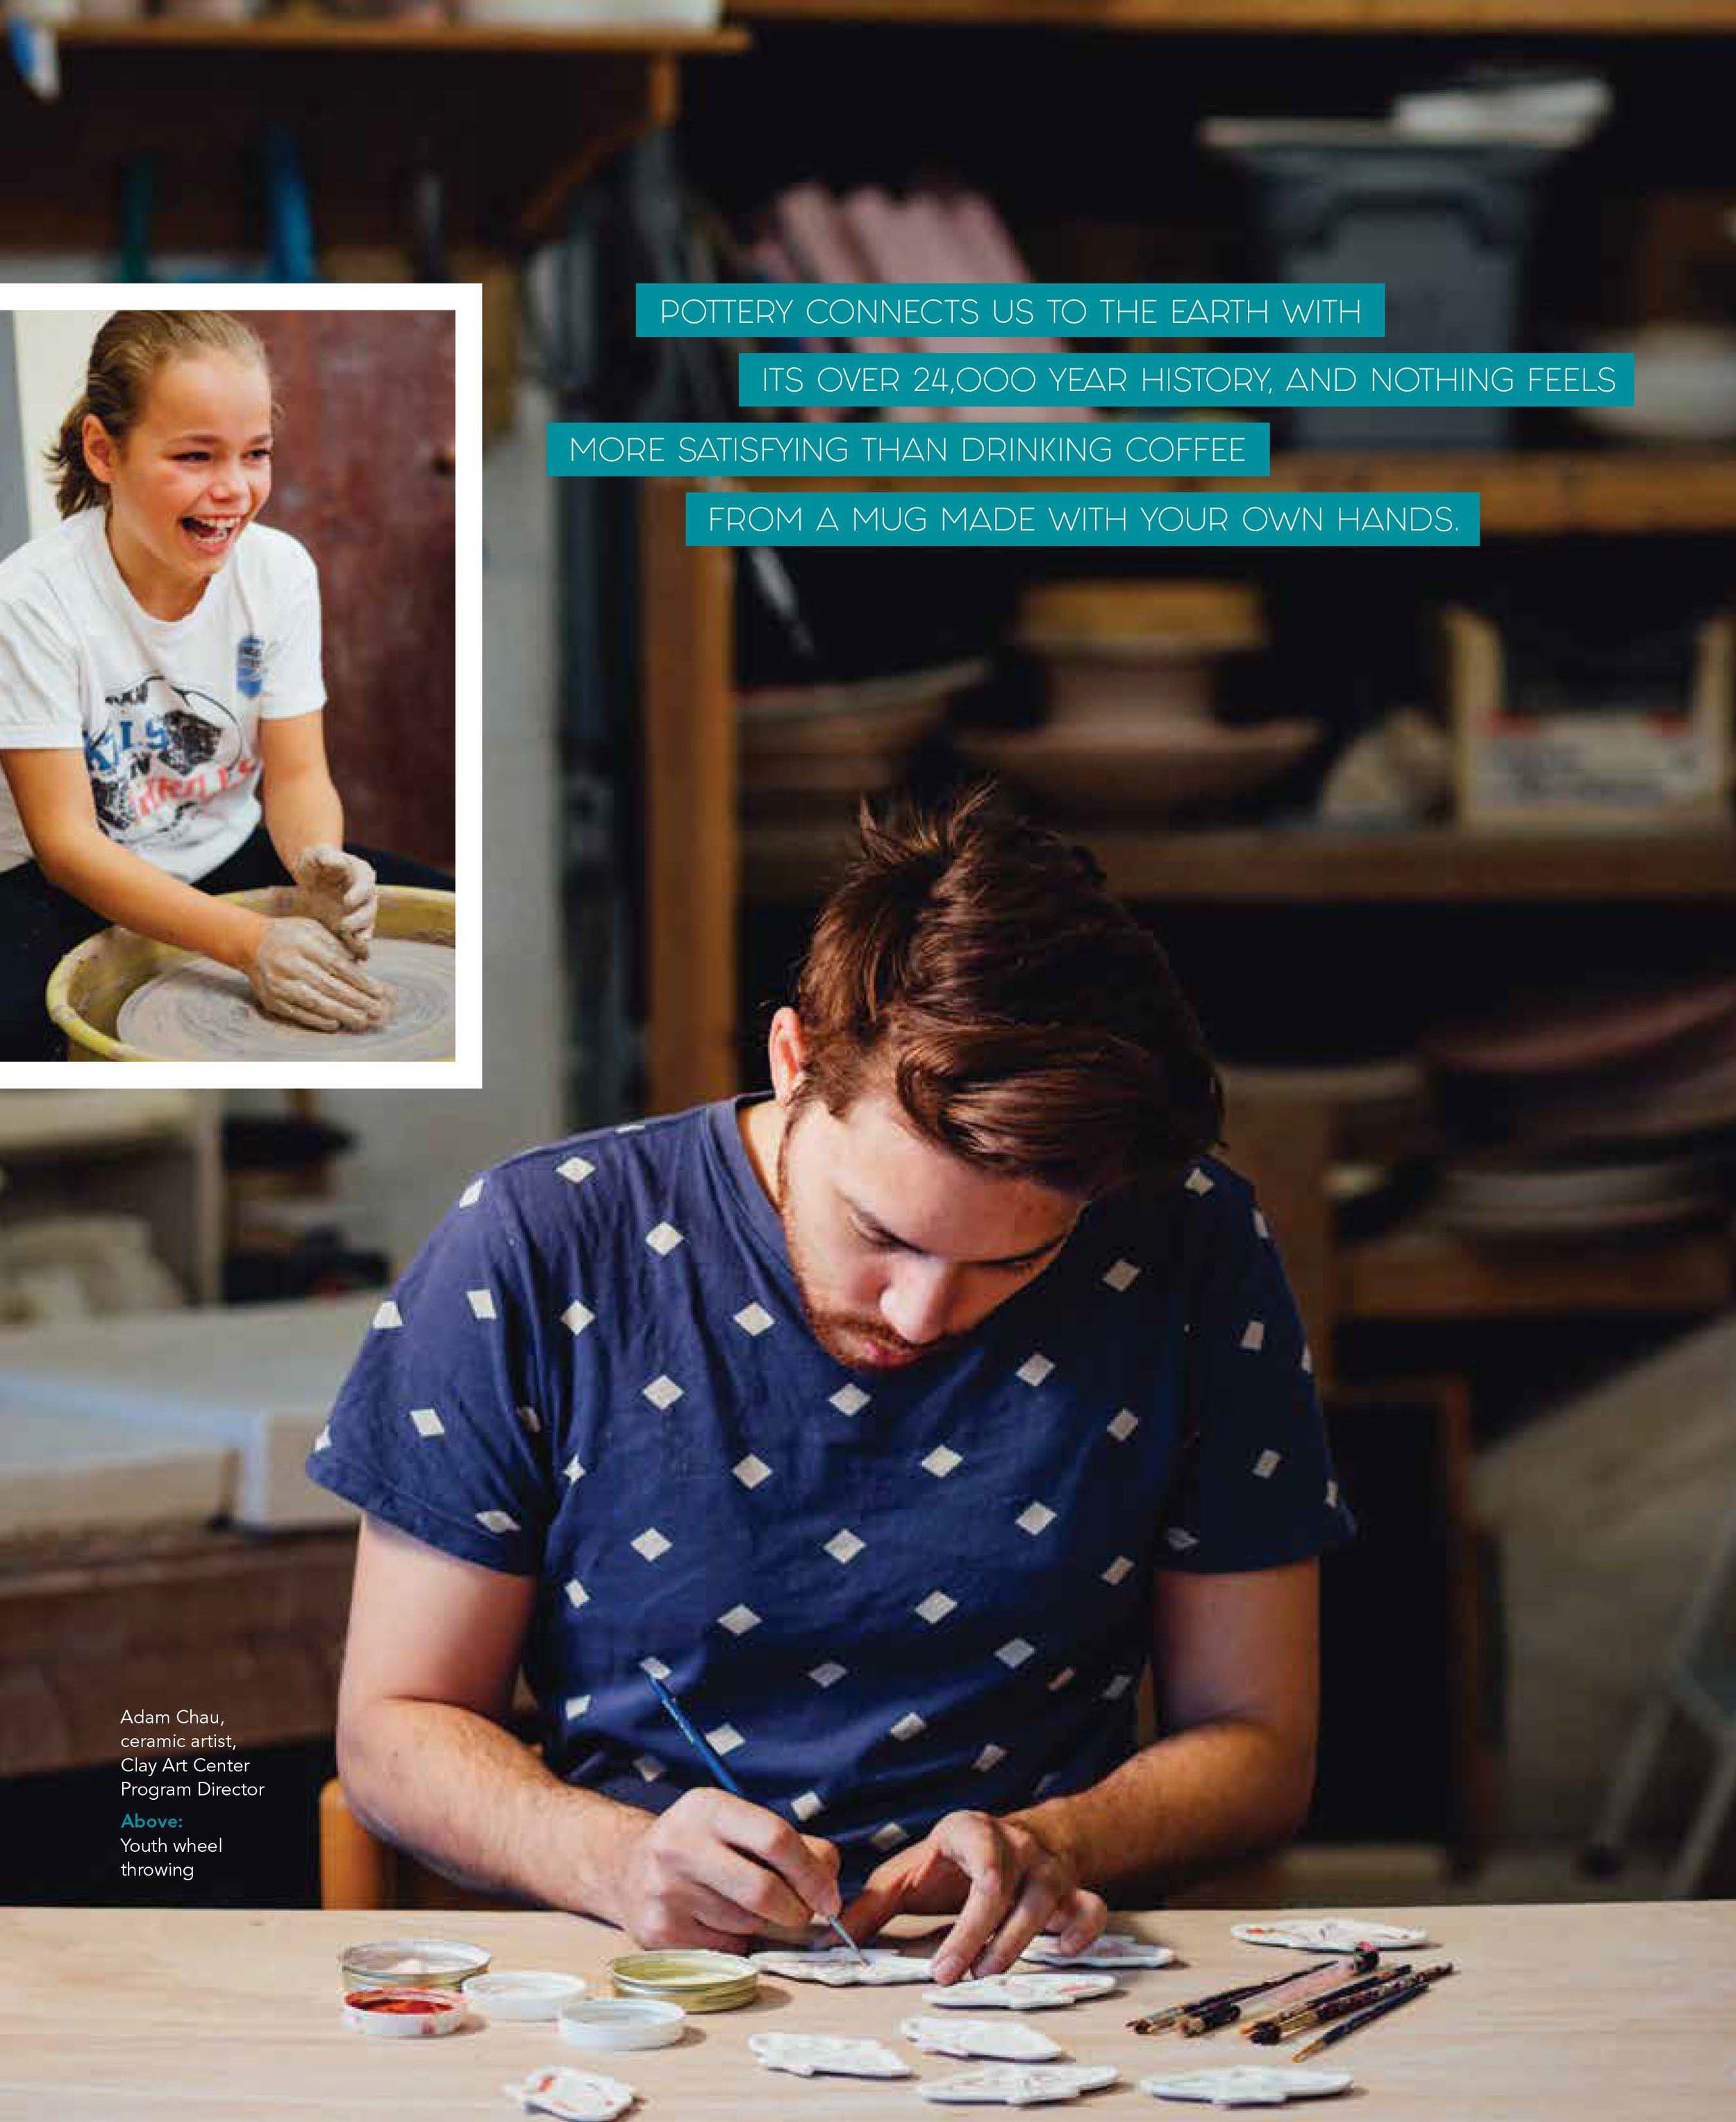 Clay Art Center Venu Magazine Feature Fall 2017-page 3.jpg